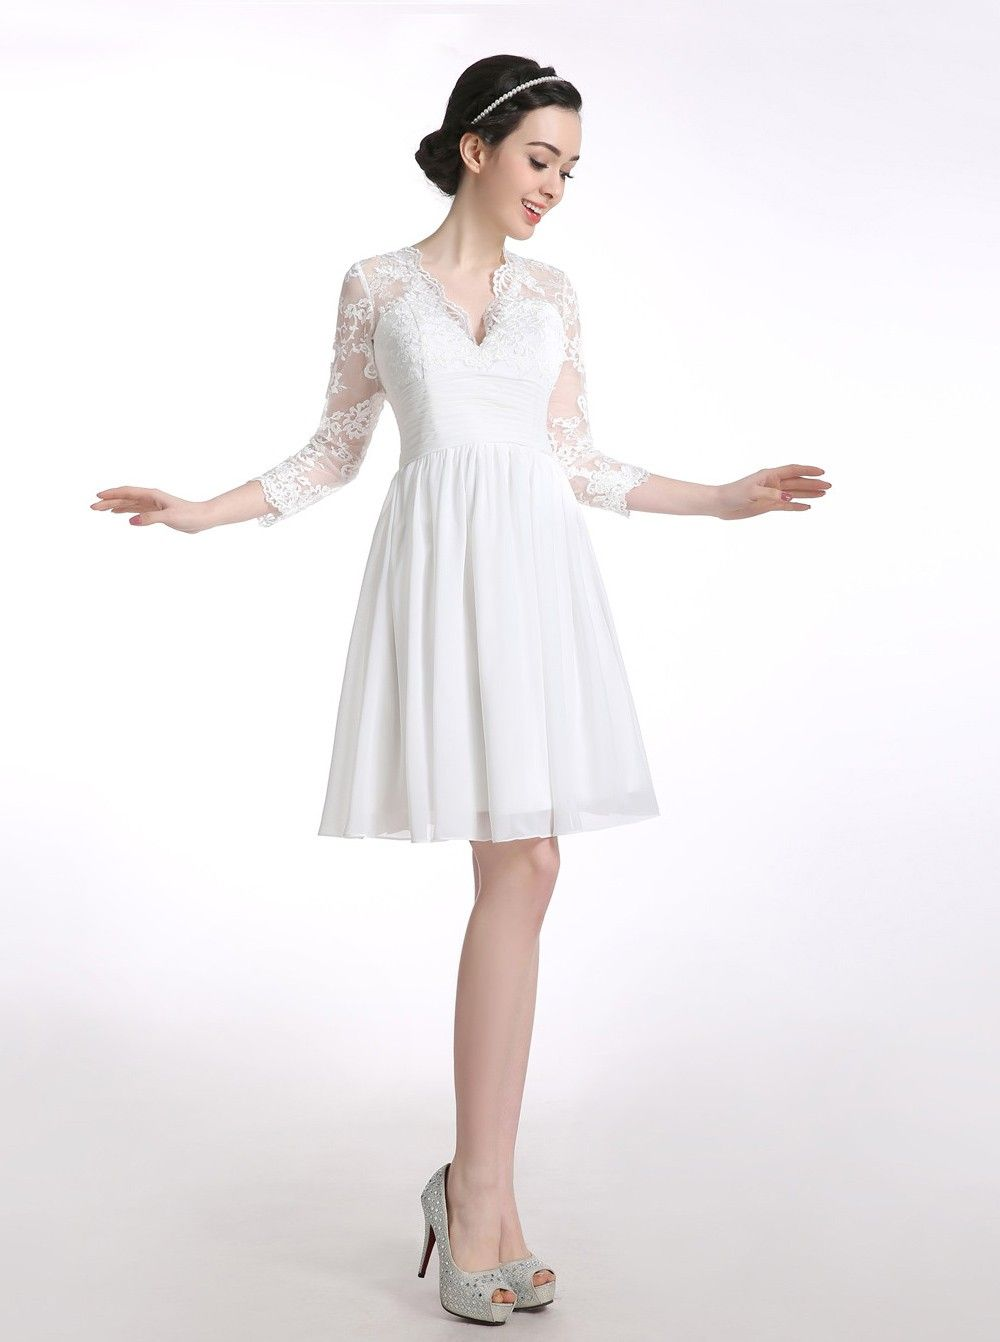 539d3696abe V-neck Chiffon Long Sleeves White Short Homecoming/Prom Dress With Appliques  - Dresstells.com